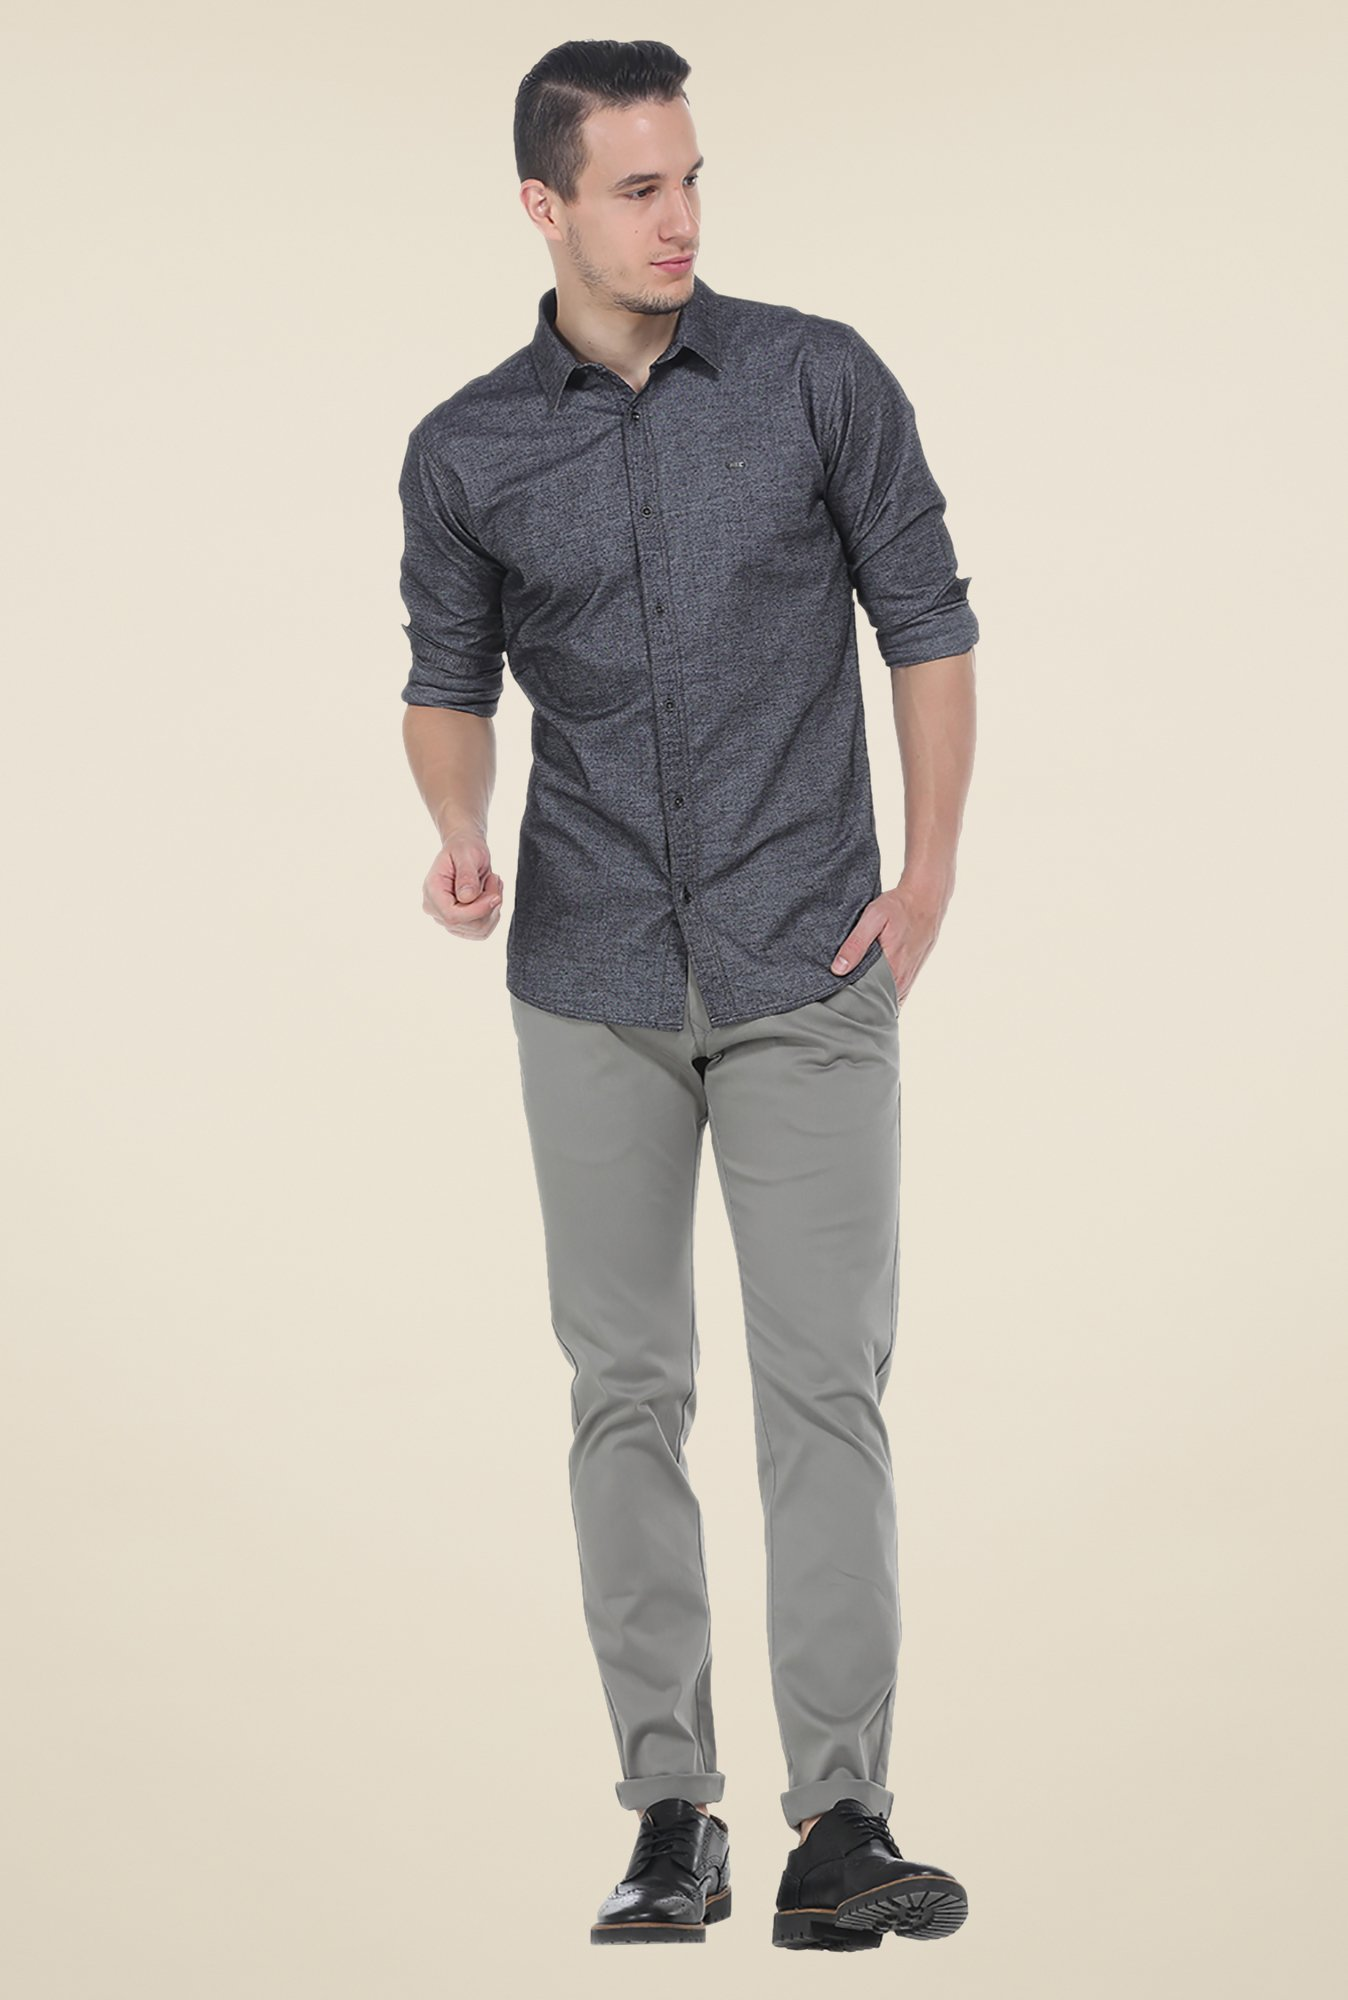 Basics Dark Grey Textured Shirt